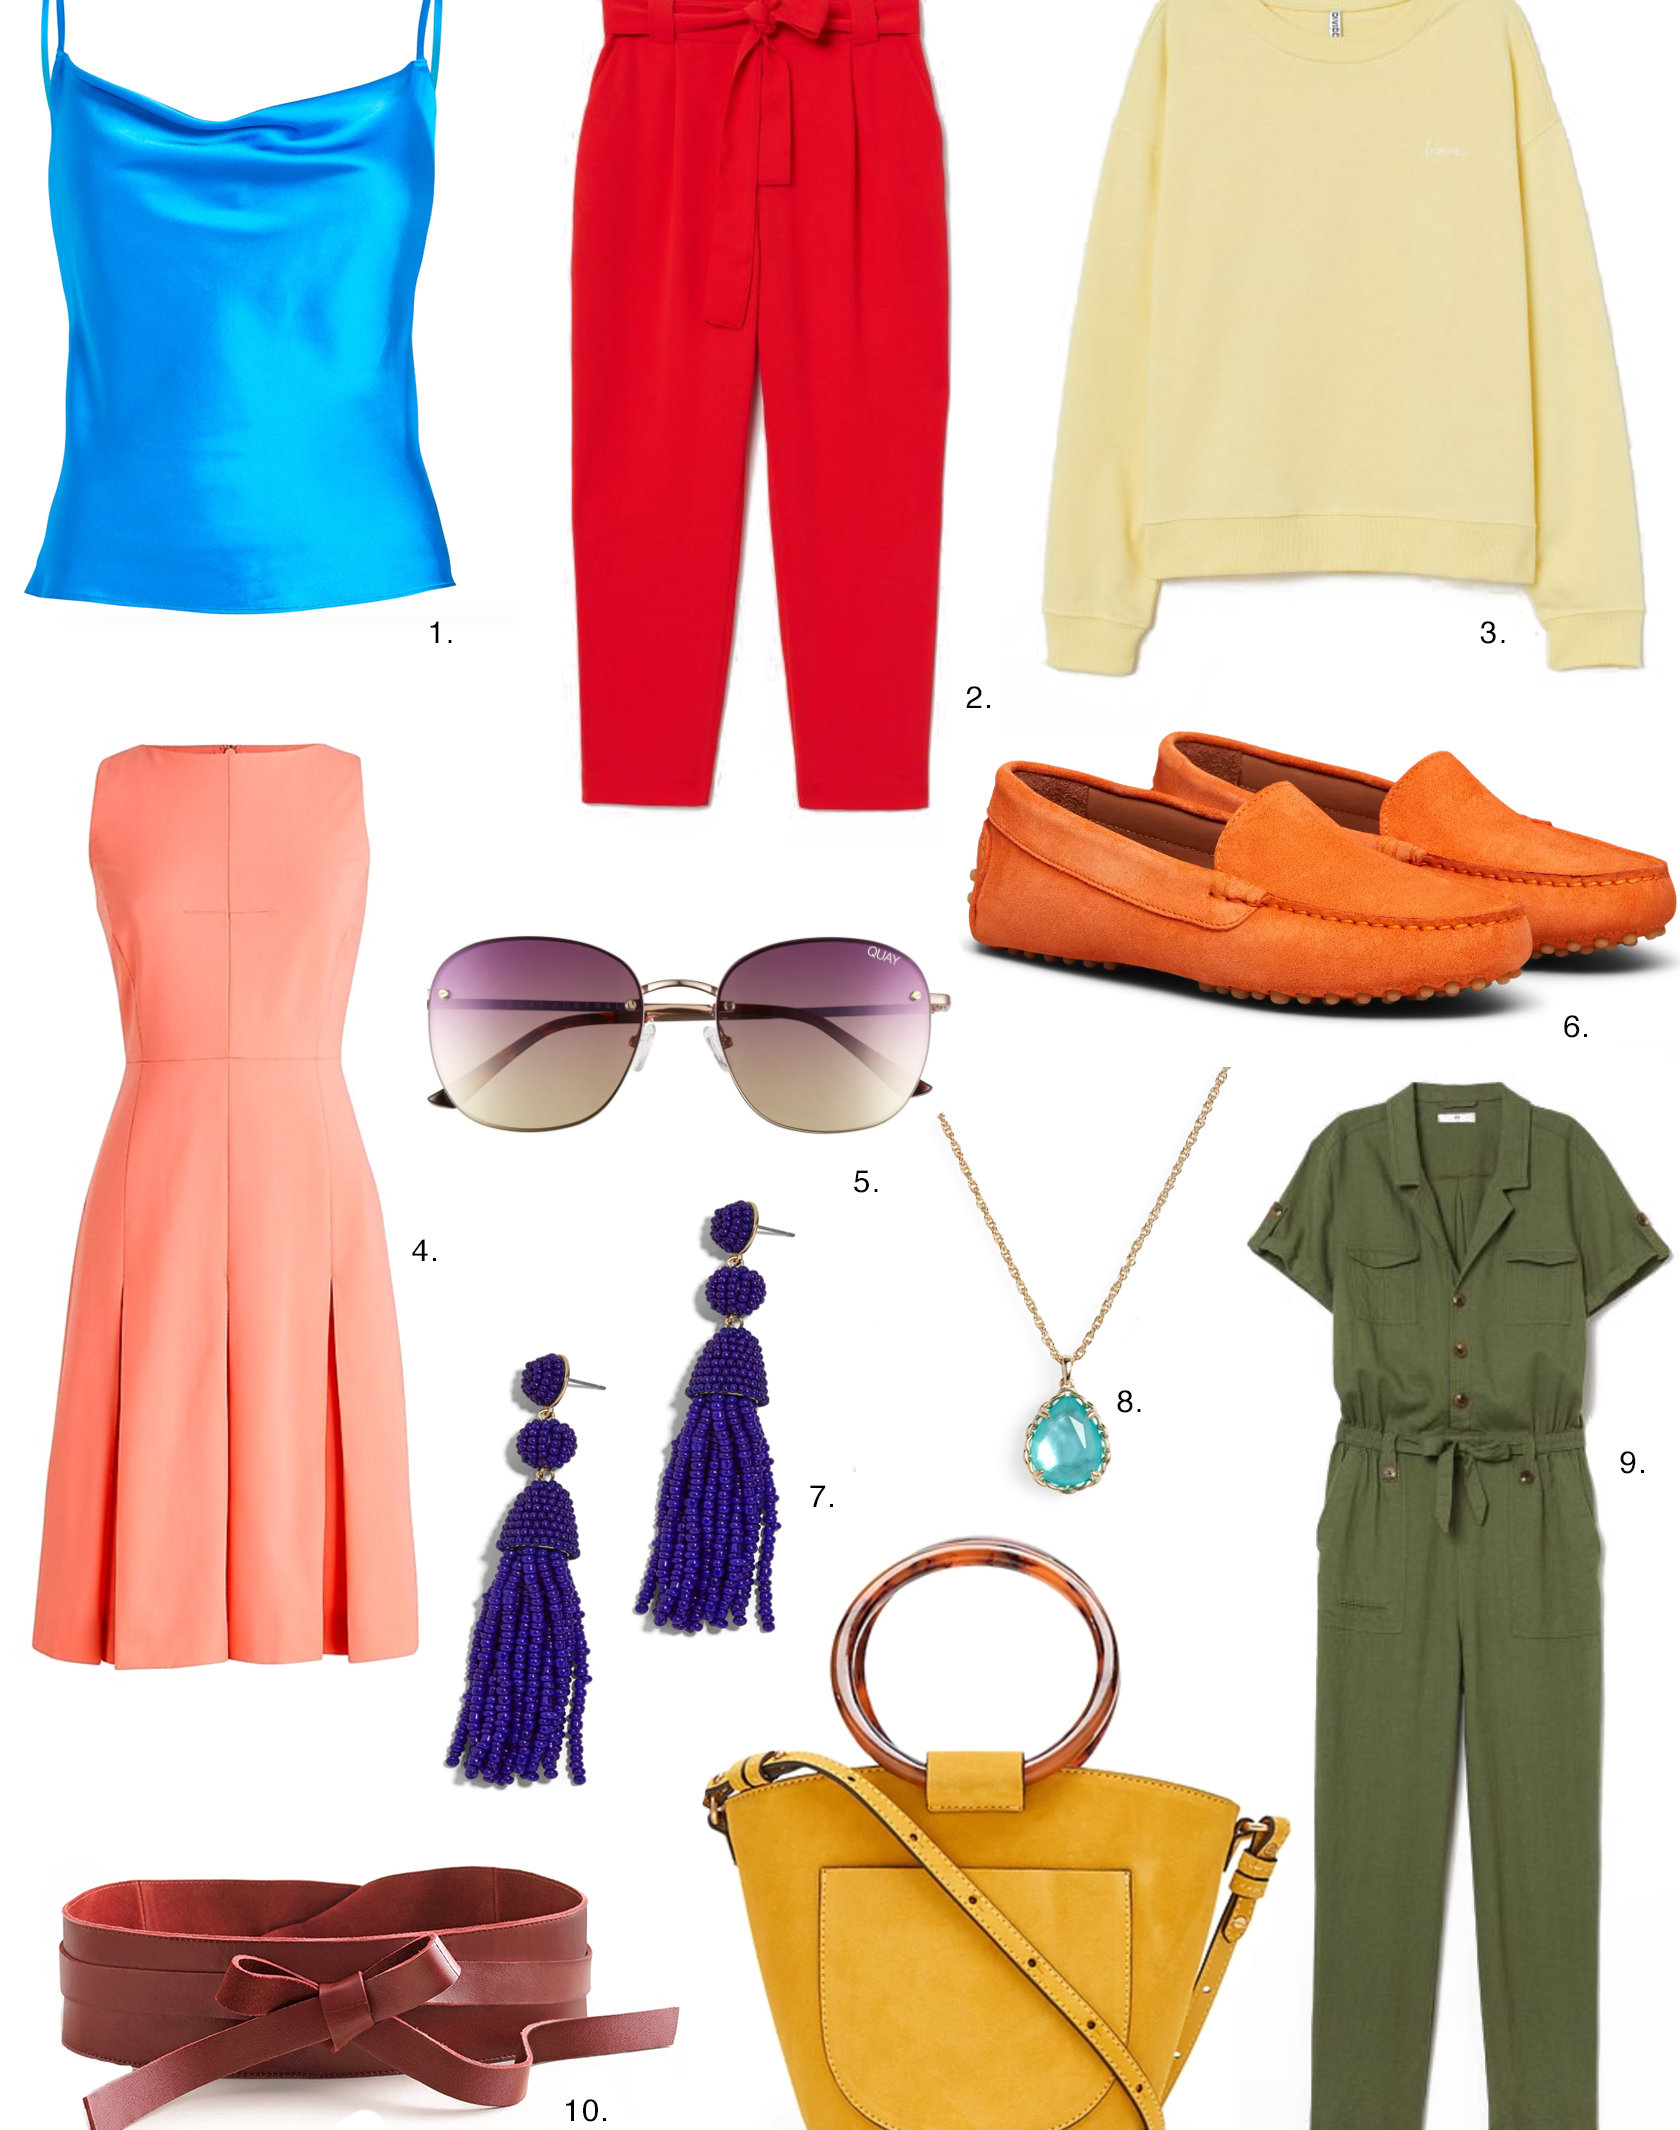 Sydne-Style-rounds-up-the-top-color-trends-for-spring-2020-with-pantone-color-report